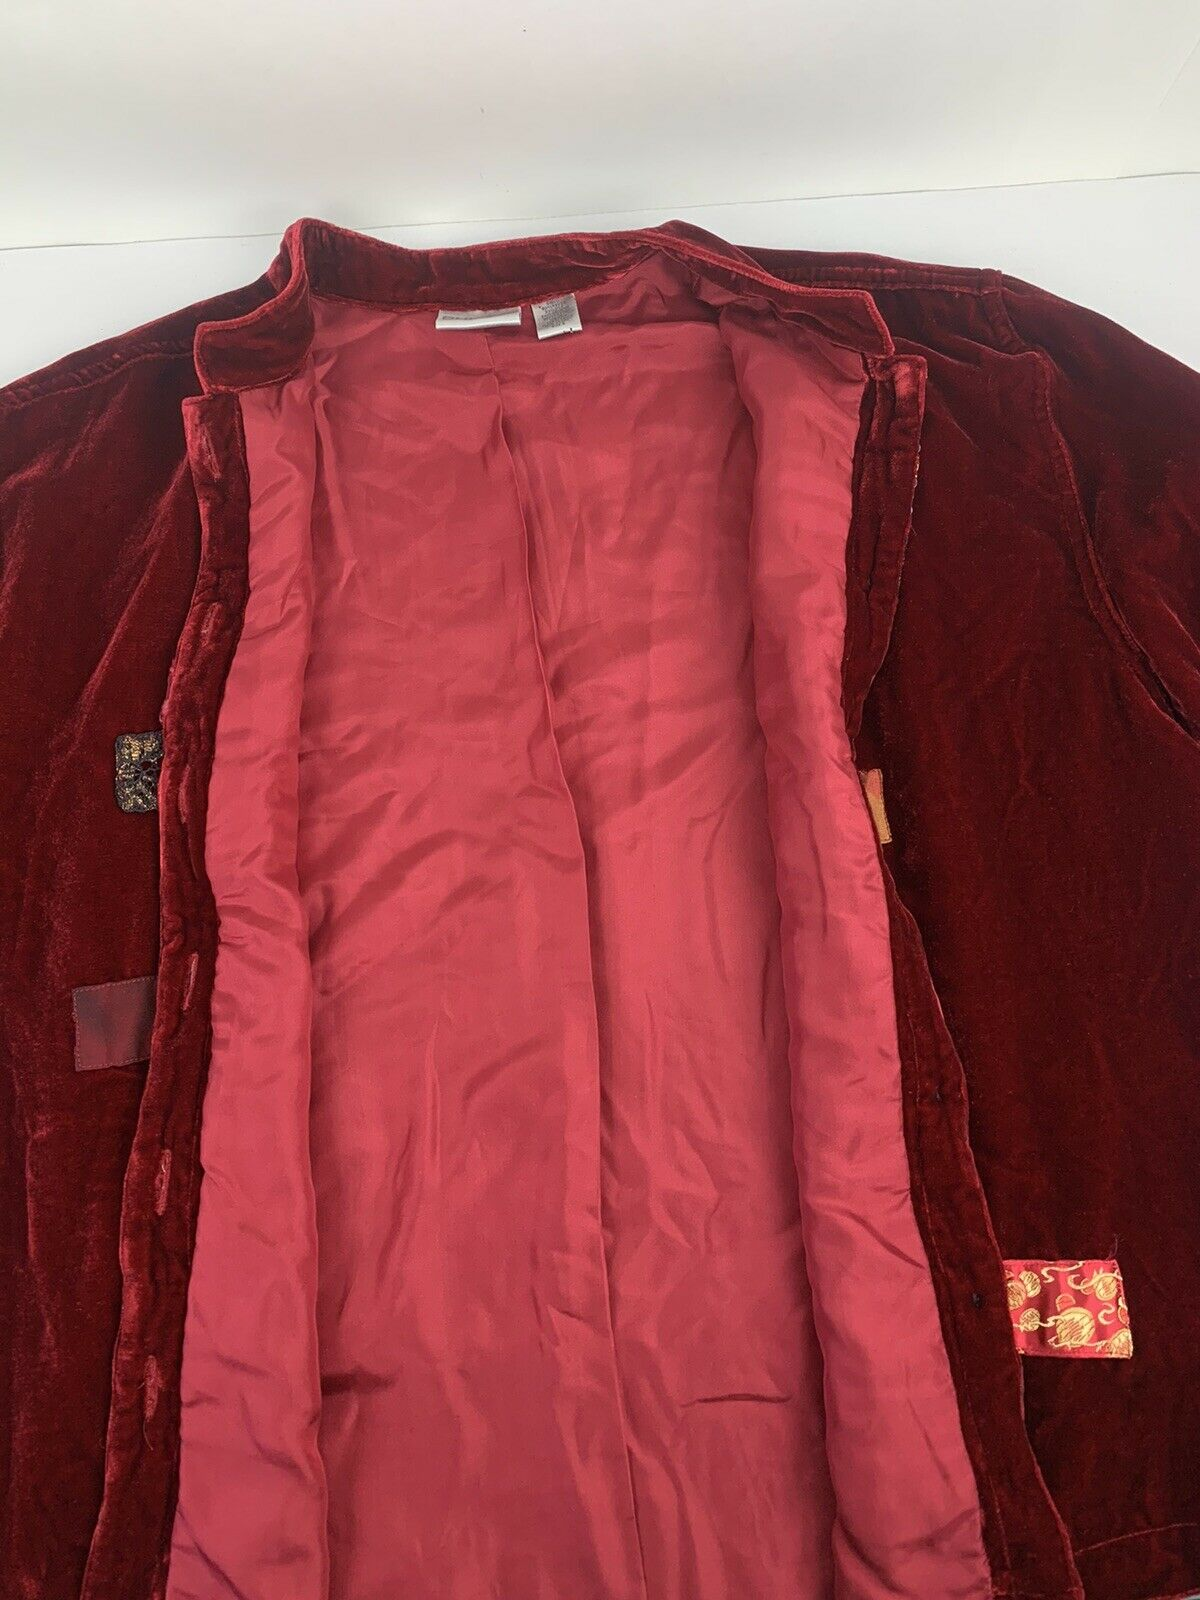 Chicos Womens Button Jacket Red Velvet Velour Ope… - image 4